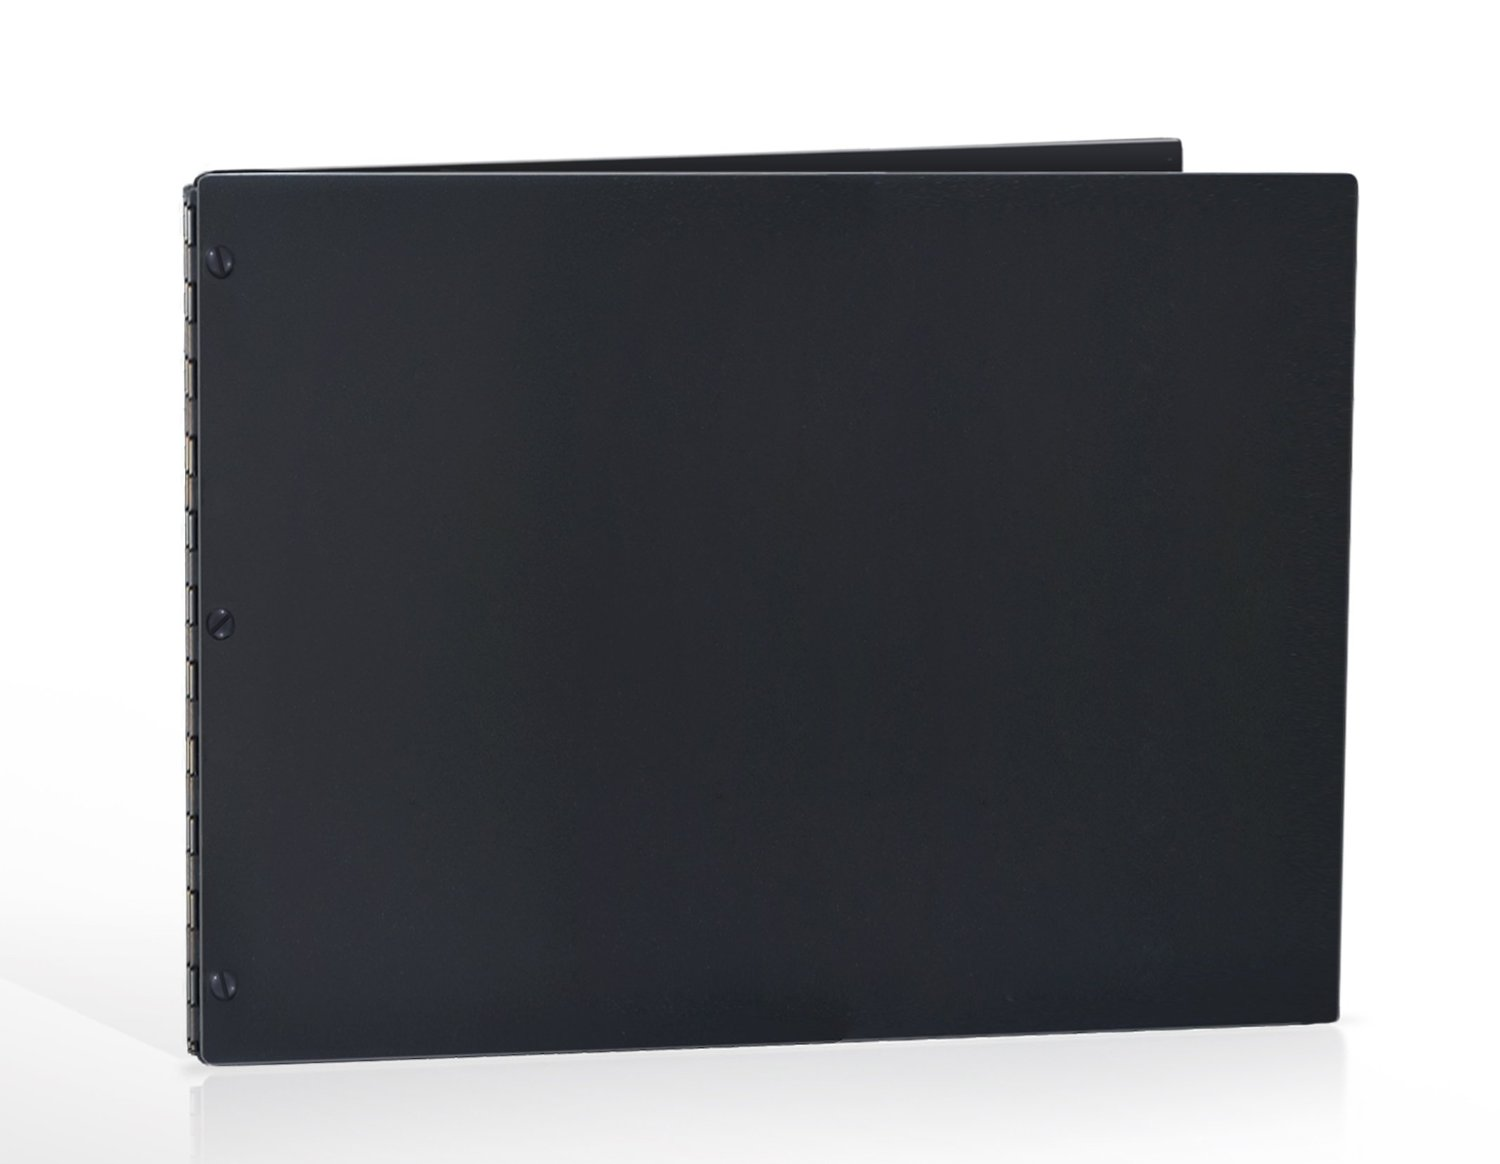 11x14 Landscape Matte Black Portfolio with Black Hinges. Portfolio book, Screw post portfolio, Portfolio Presentation. Engraving services are not included.